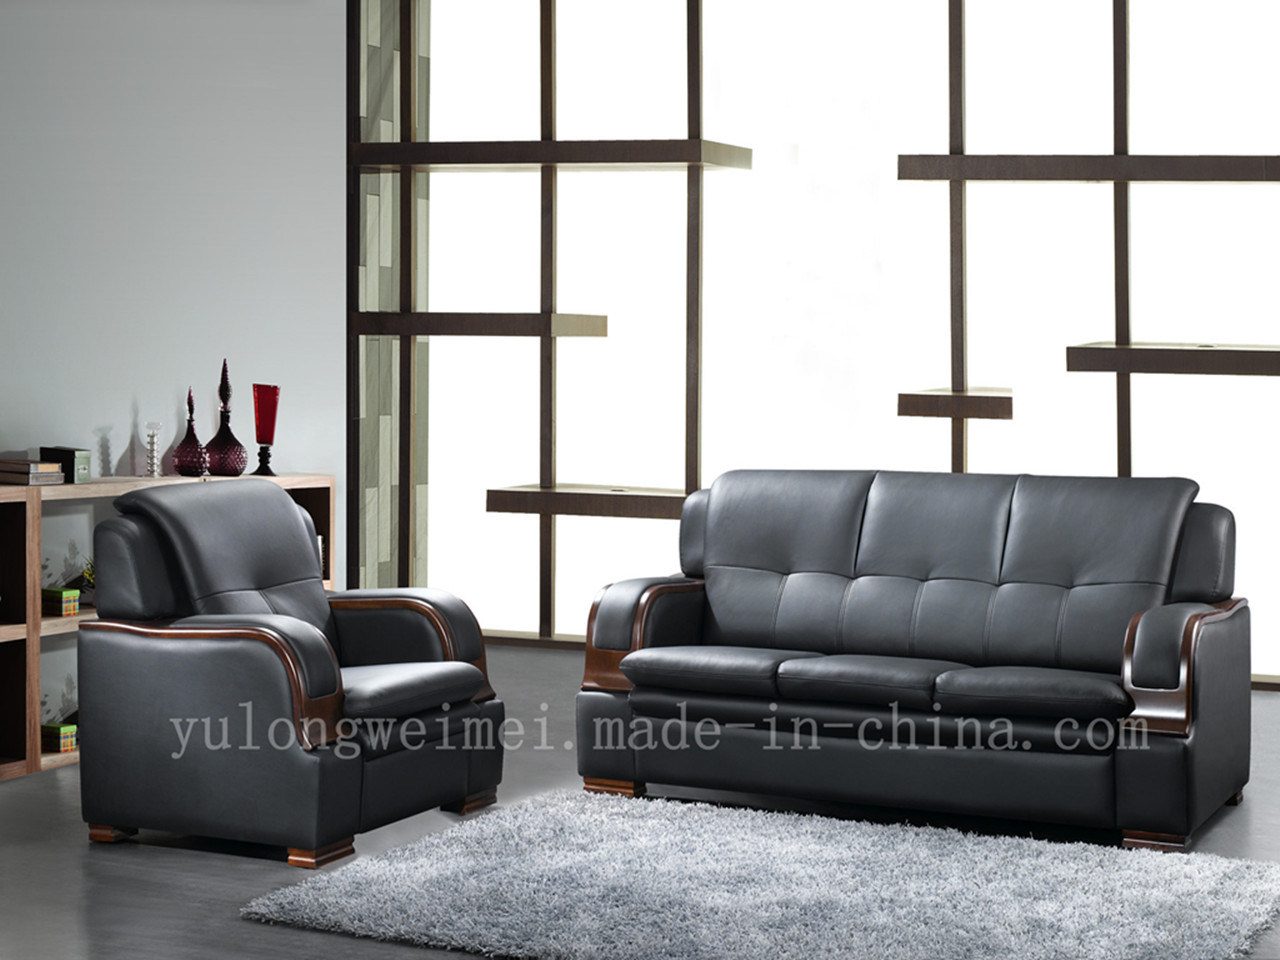 china 2011 modern office sofa wk 351 china home. Black Bedroom Furniture Sets. Home Design Ideas